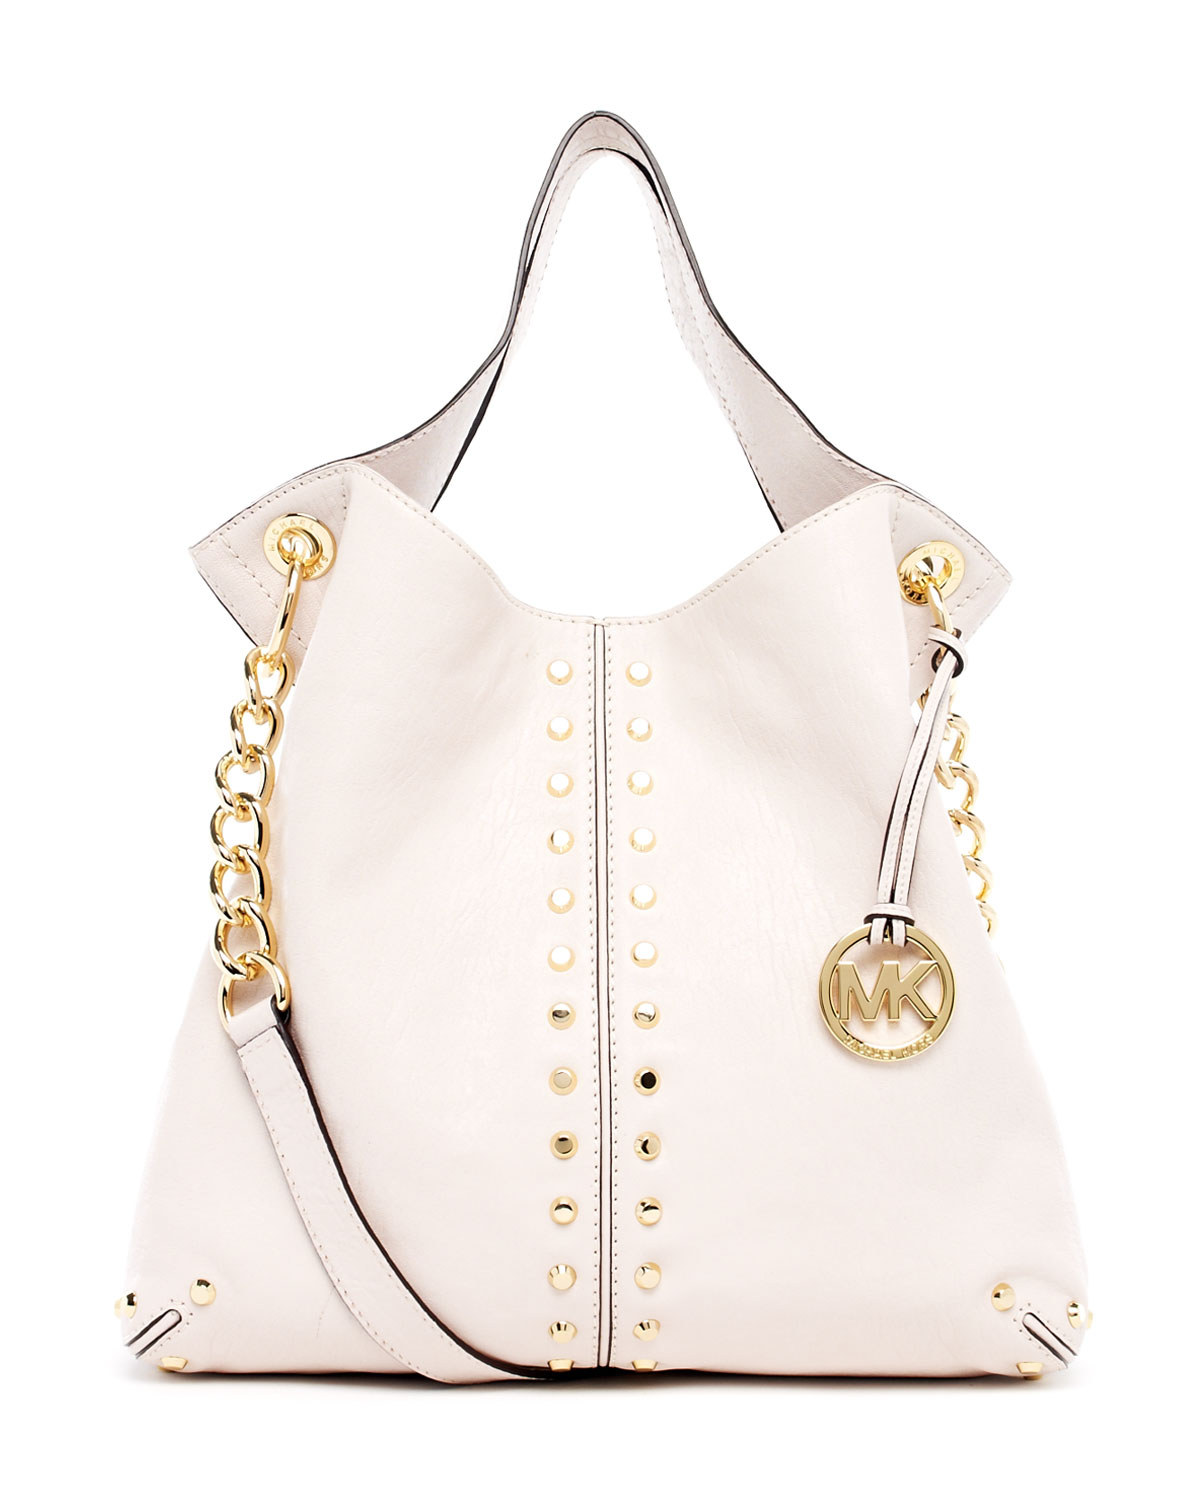 ff95202b623e Michael Kors Uptown Astor Large Shoulder Tote in White - Lyst